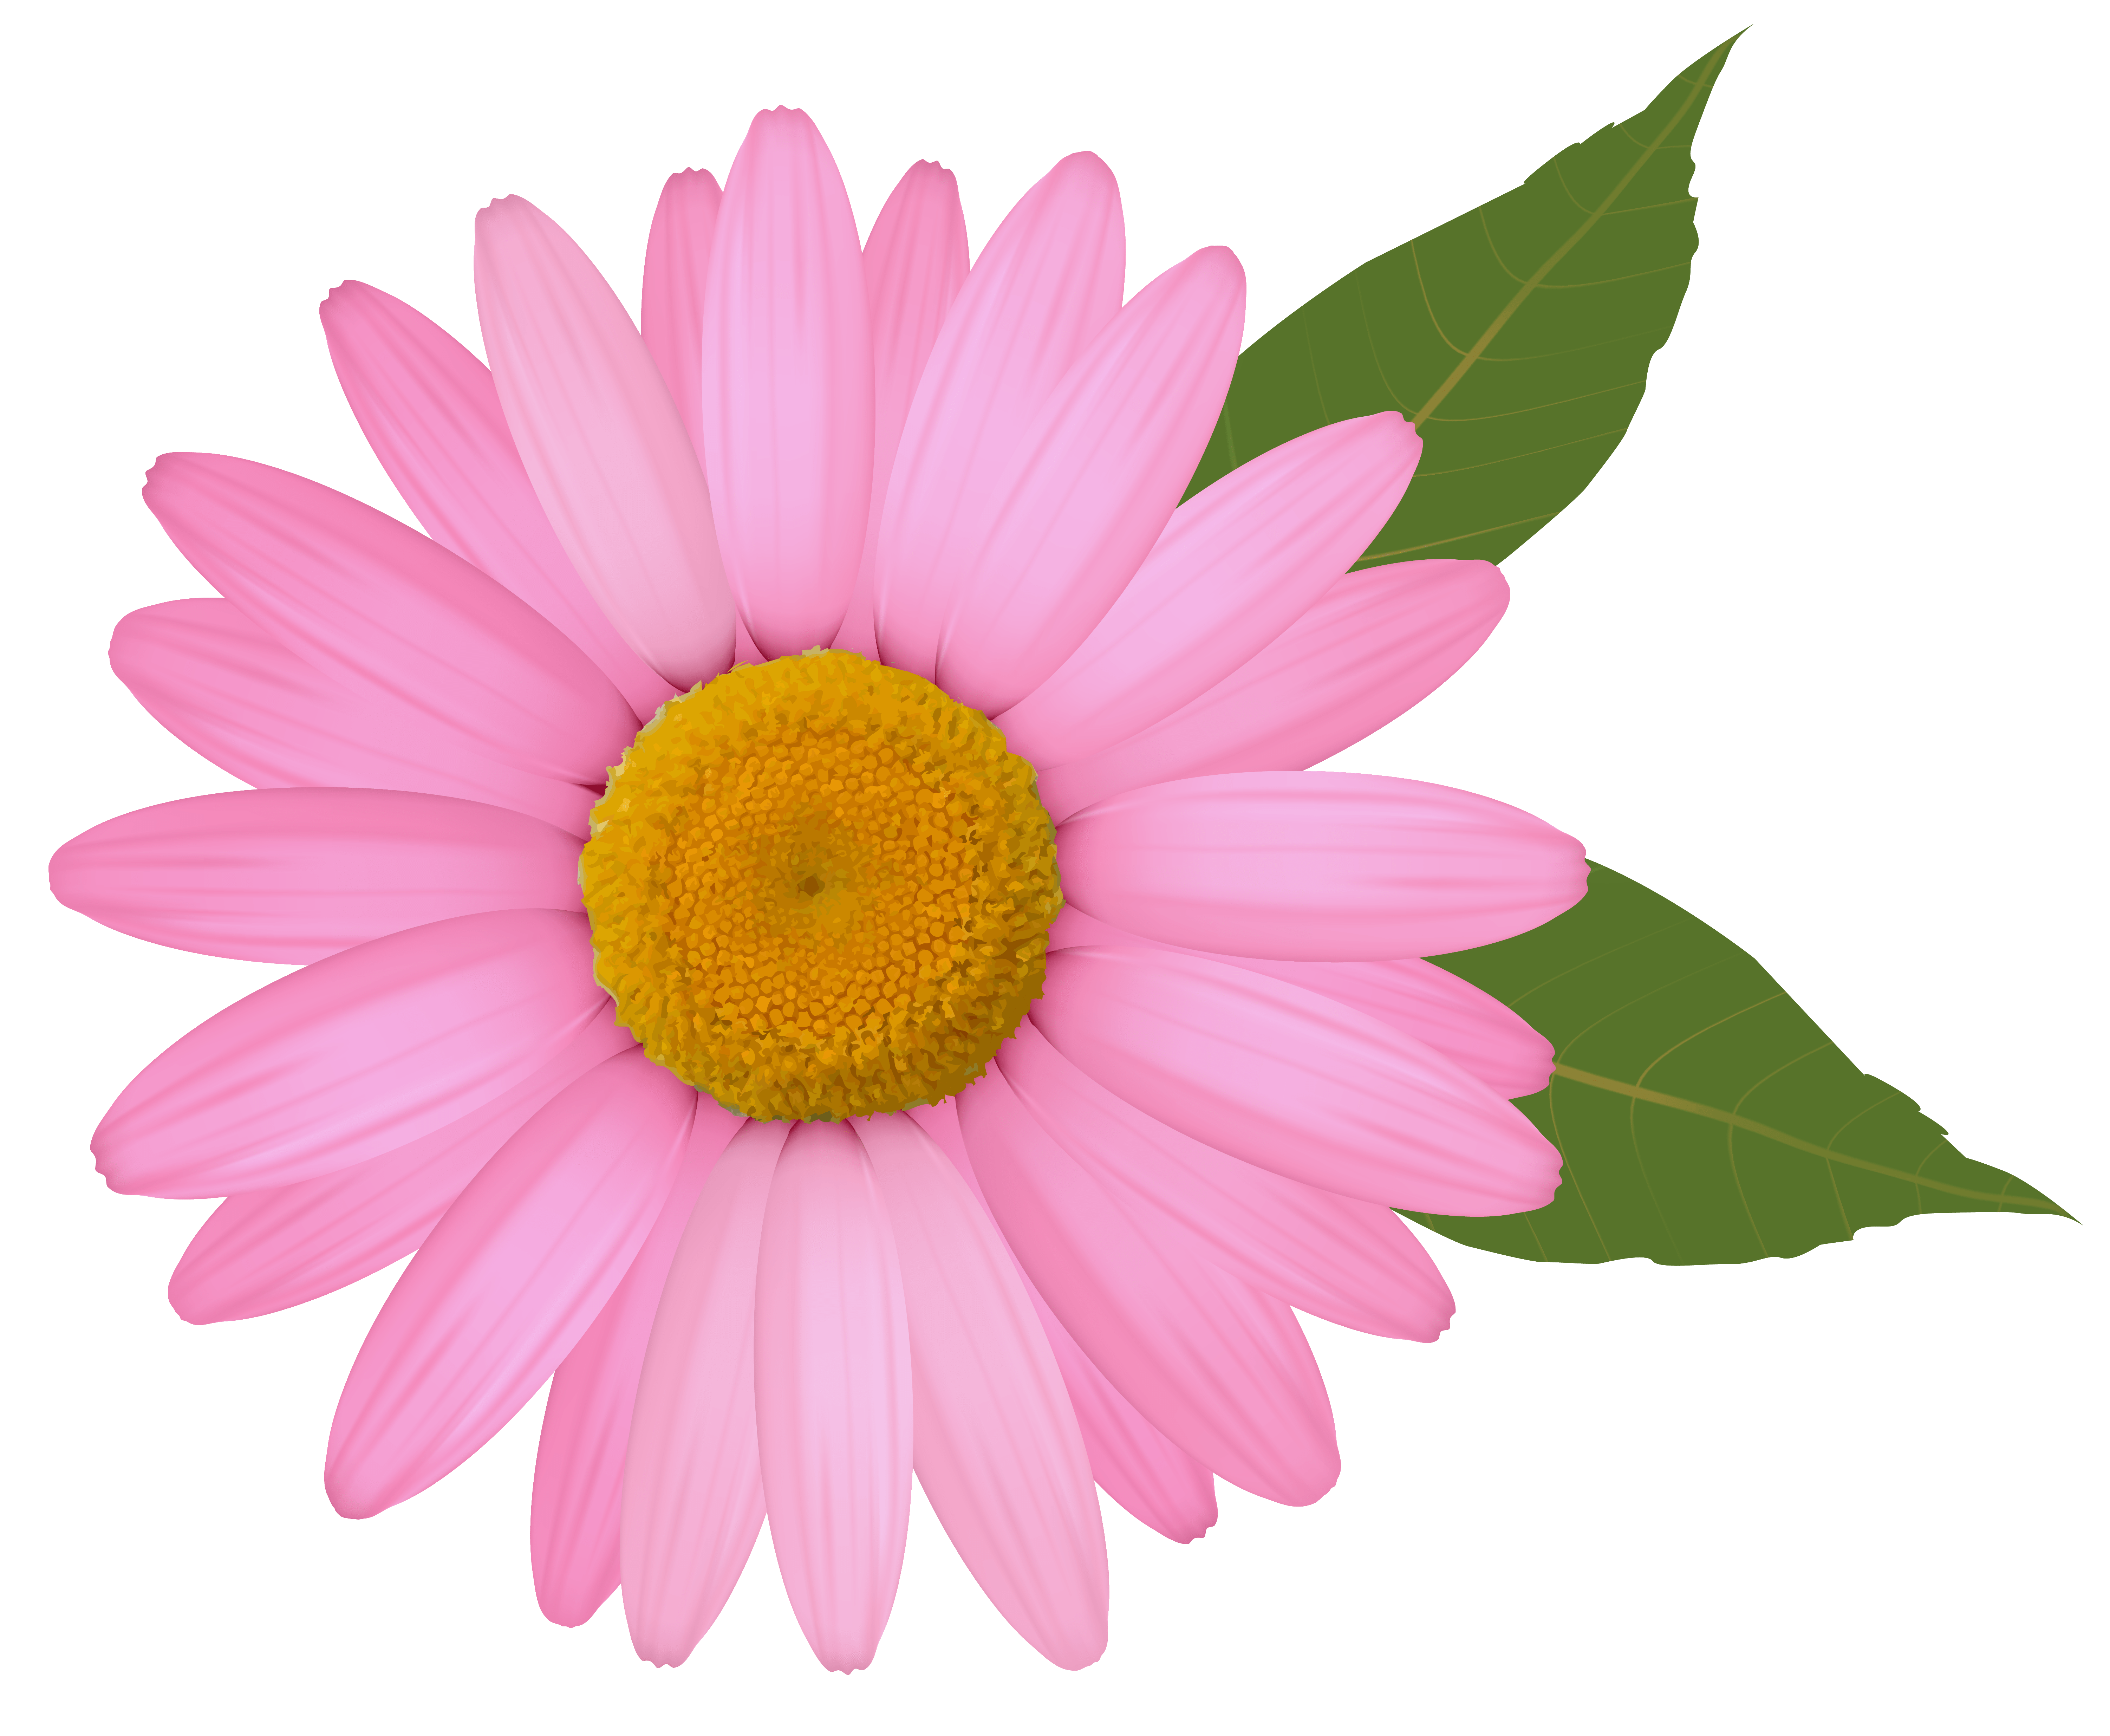 pink daisy png clipart image [ 6006 x 4941 Pixel ]